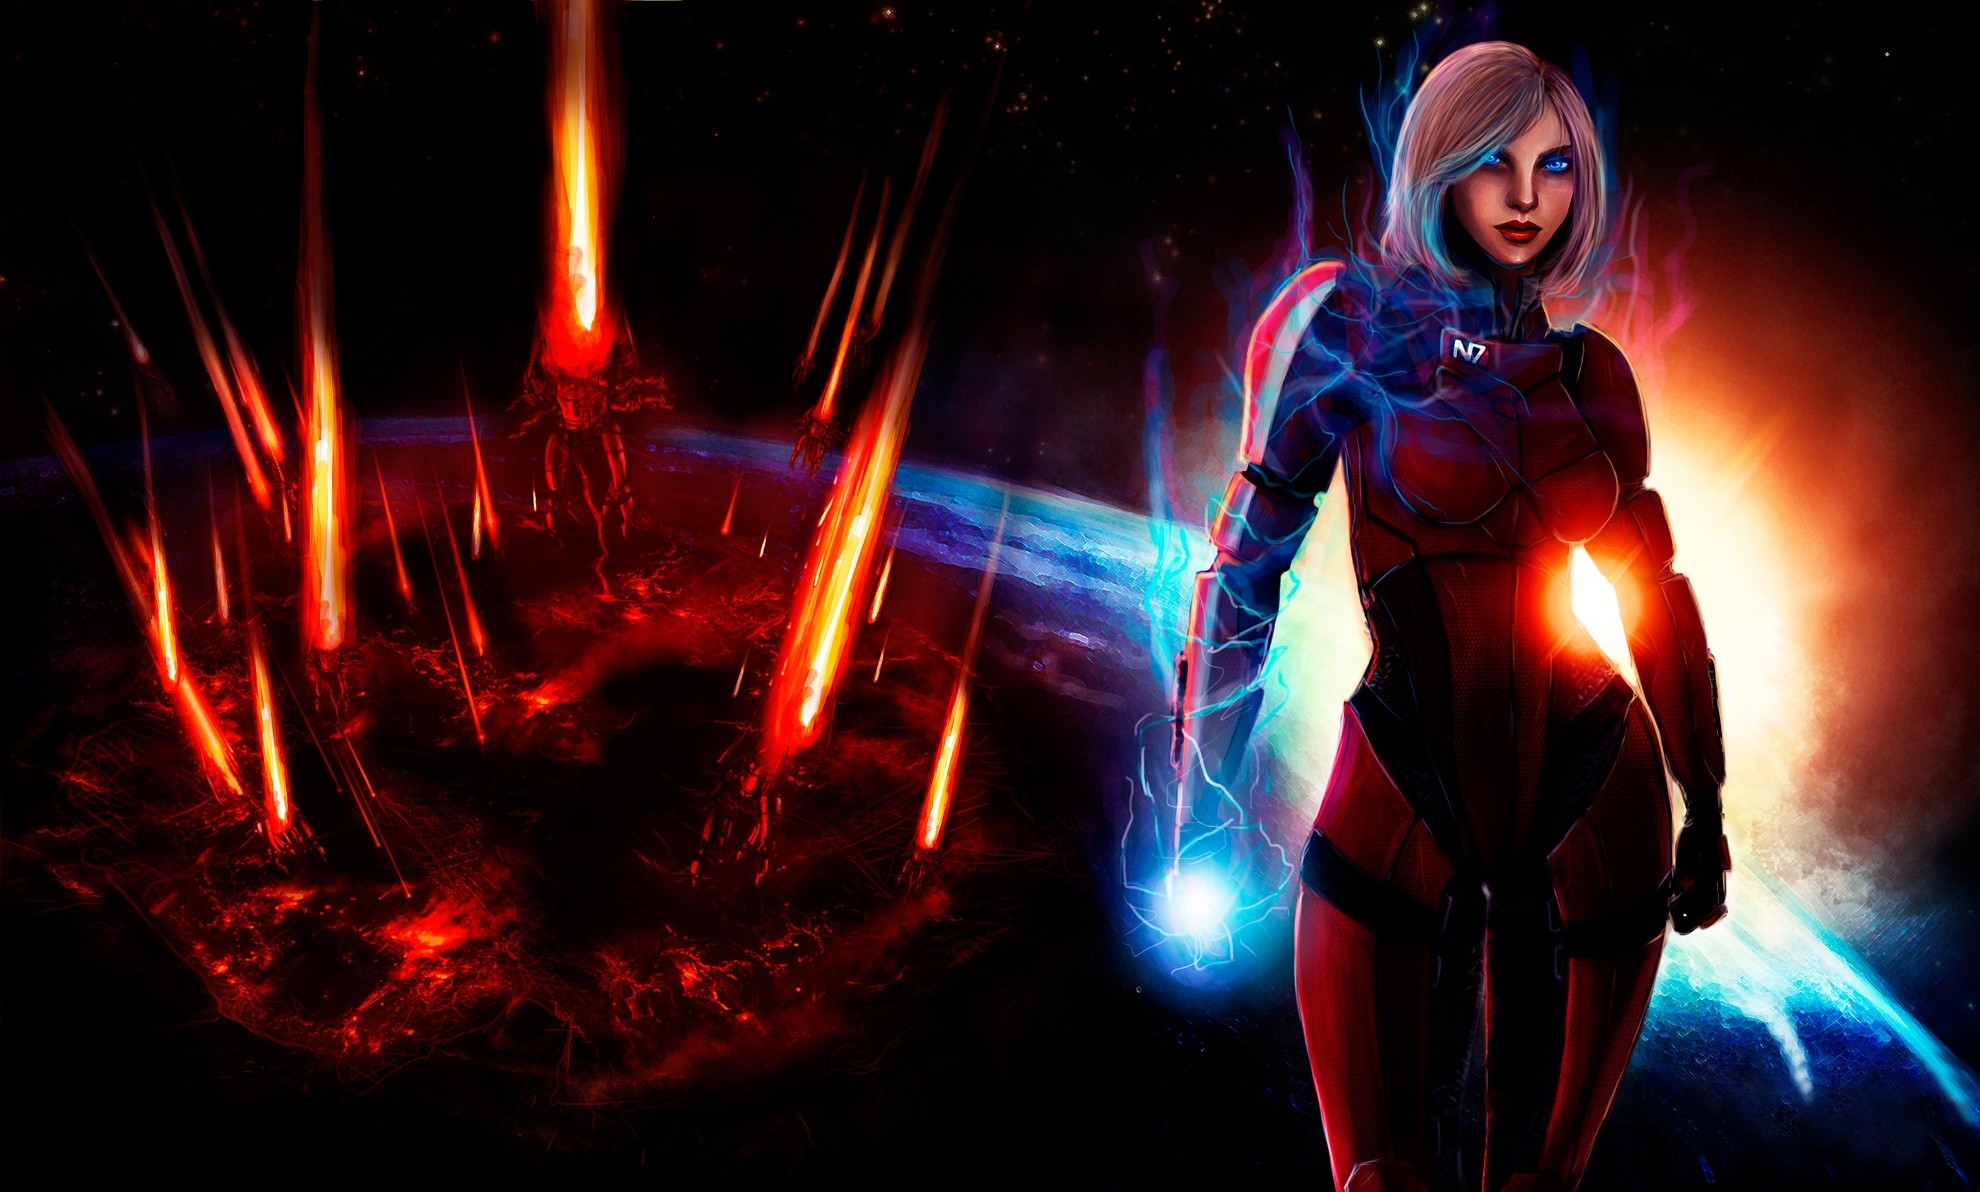 mass effect mass effect HD Wallpaper